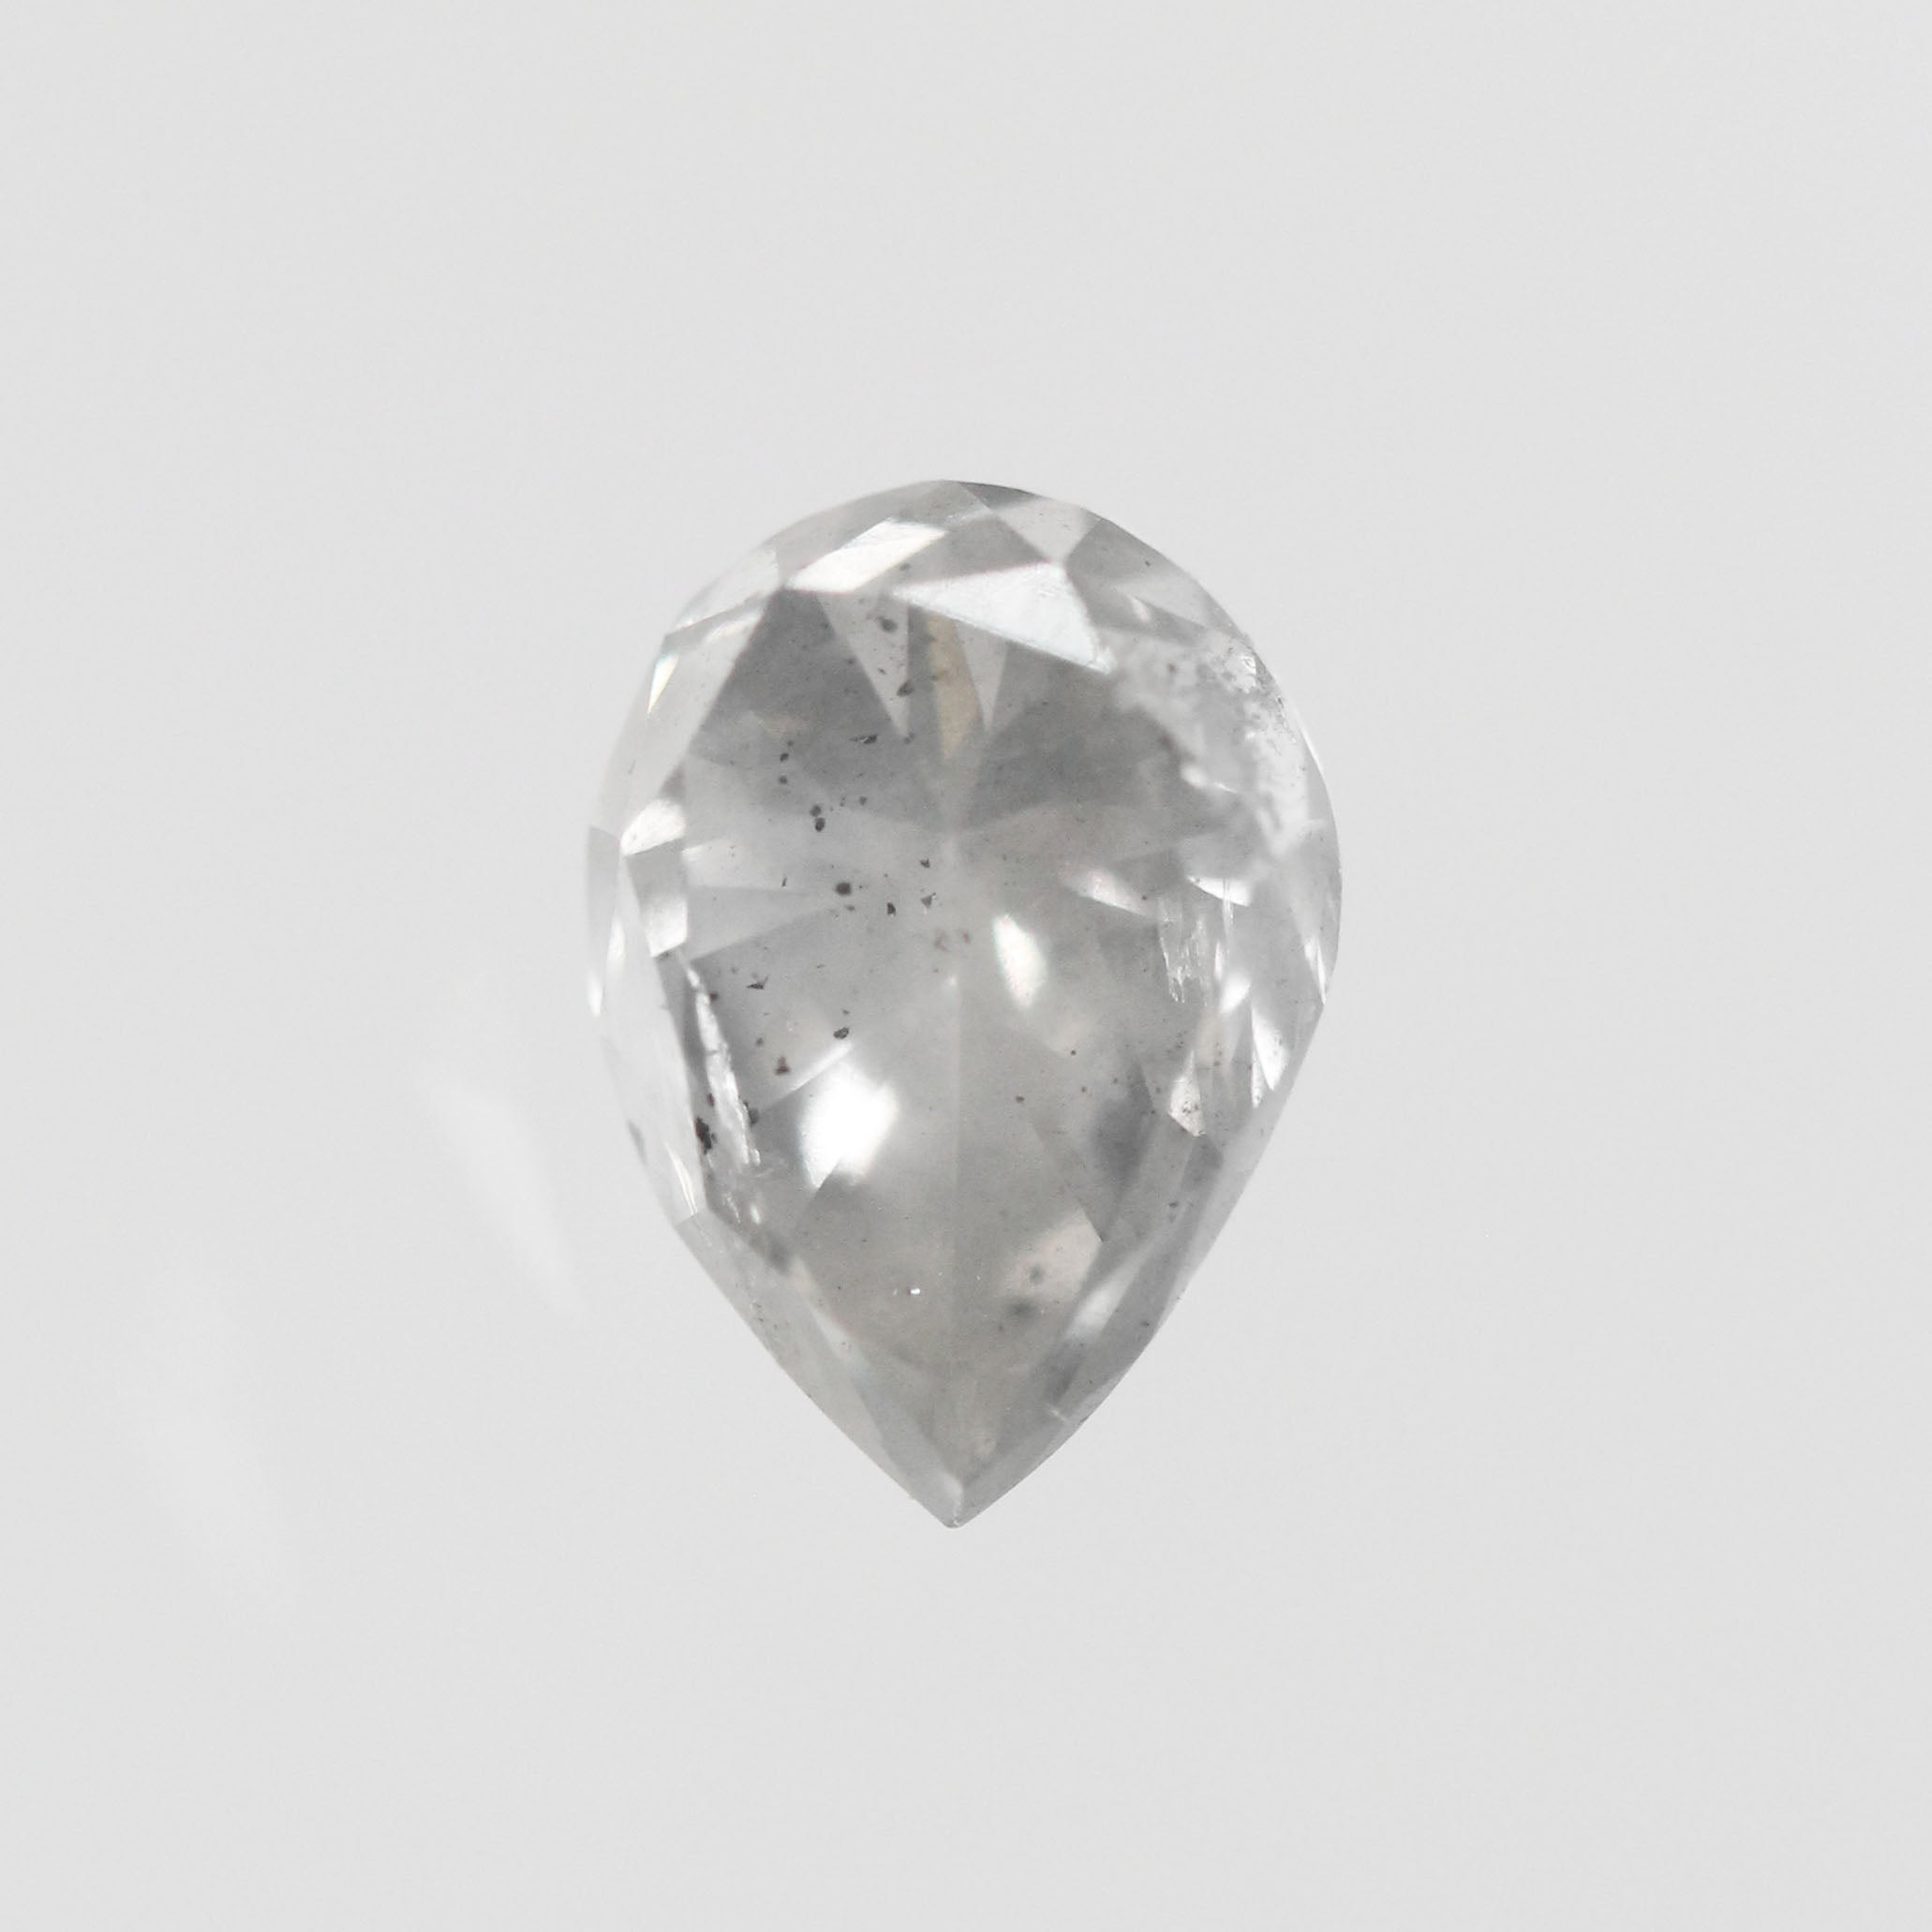 1.02 Carat Pear Celestial Diamond for Custom Work - Inventory Code PBC102 - Celestial Diamonds ® by Midwinter Co.